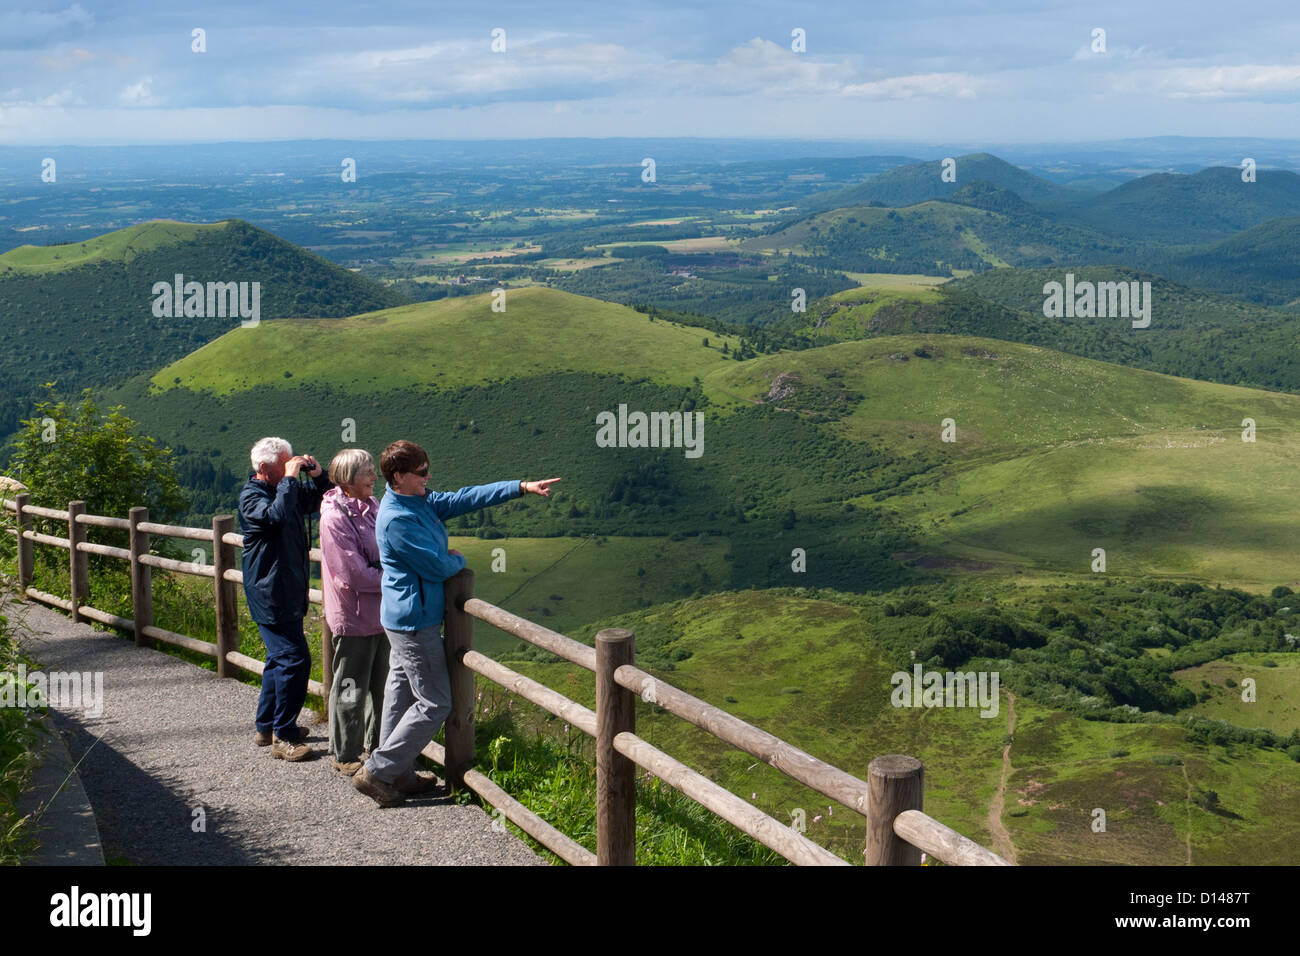 Tourists looking out from the top of the Puy de Dome to the volcanic region of the Puy de Dome in Auvergne, France - Stock Image